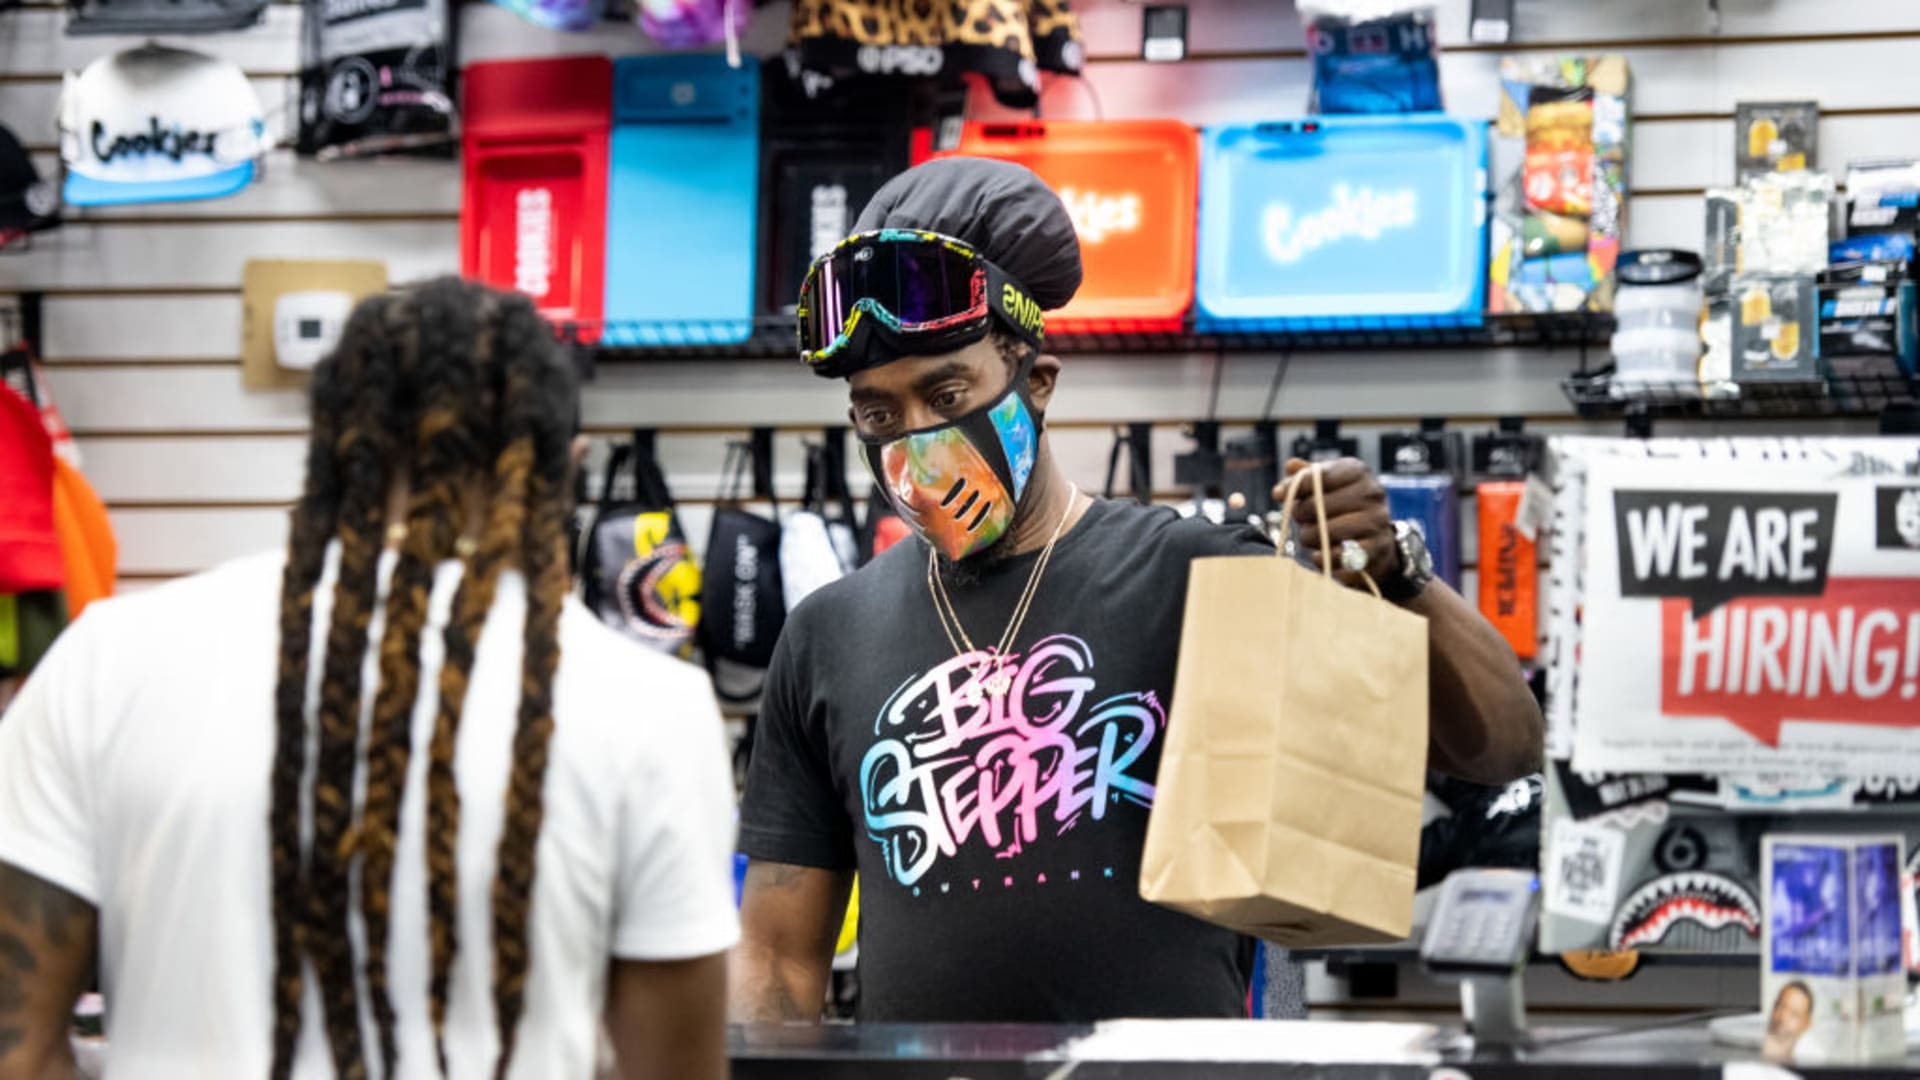 Small-business owner Birl Hicks helps a customer at Area 57 at Columbia Place Mall in Columbia, South Carolina.